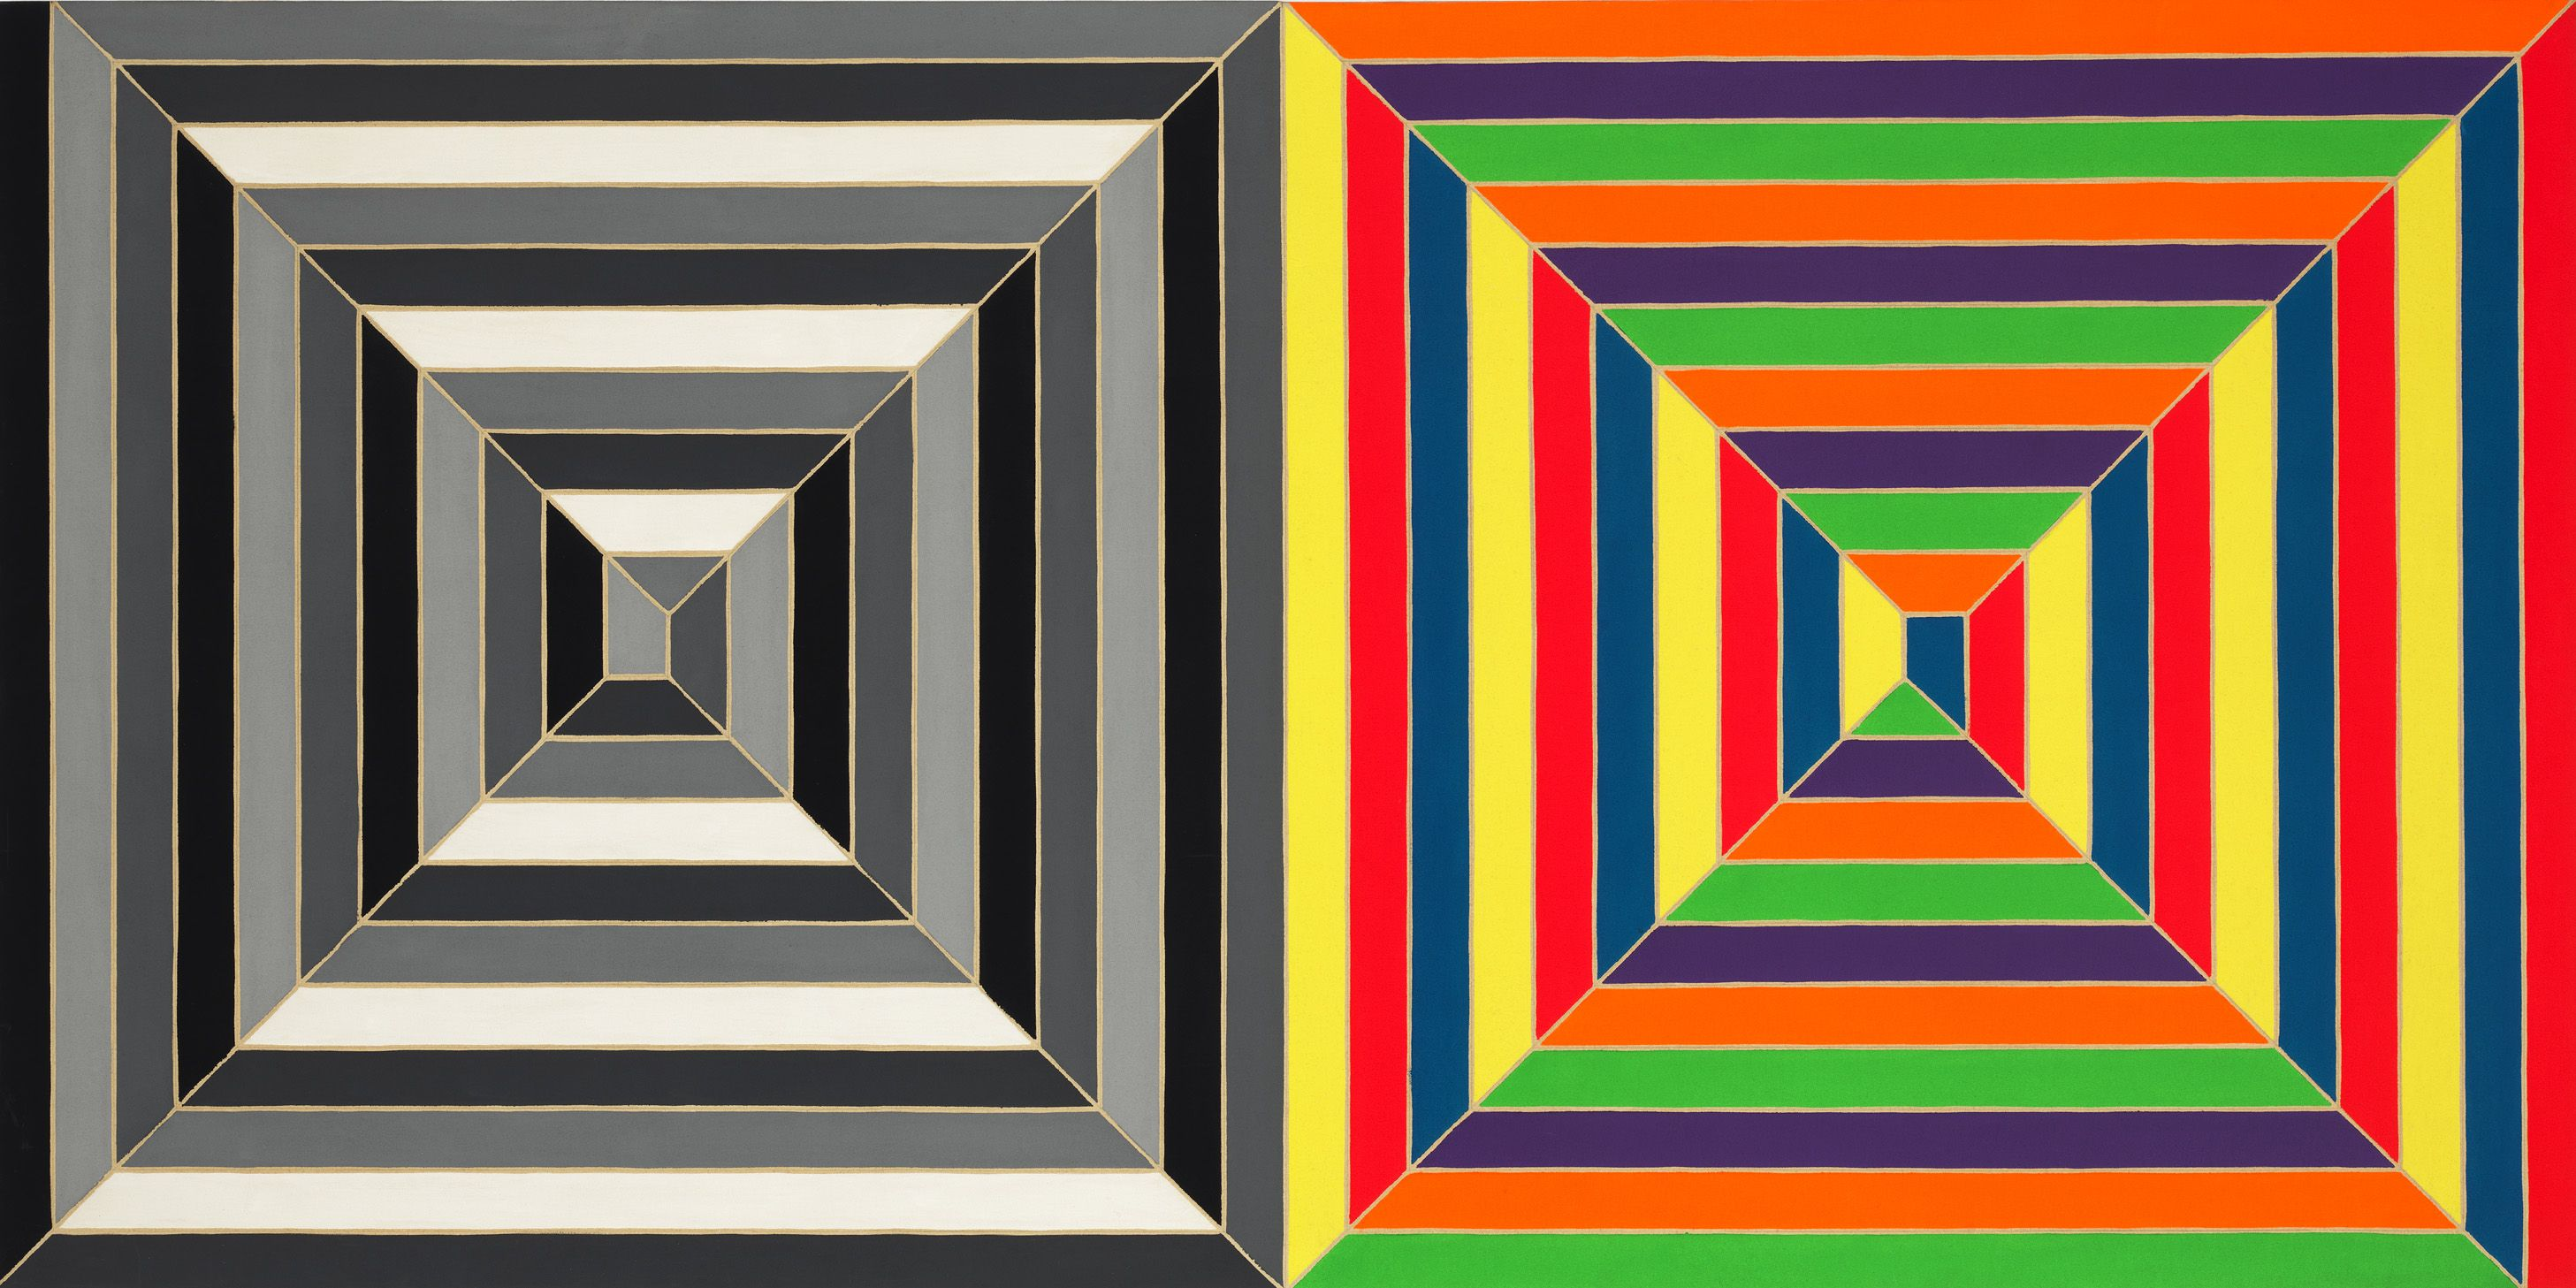 Frank stella_untitled 1966 acrylic and fluorescent alkyd on canvas